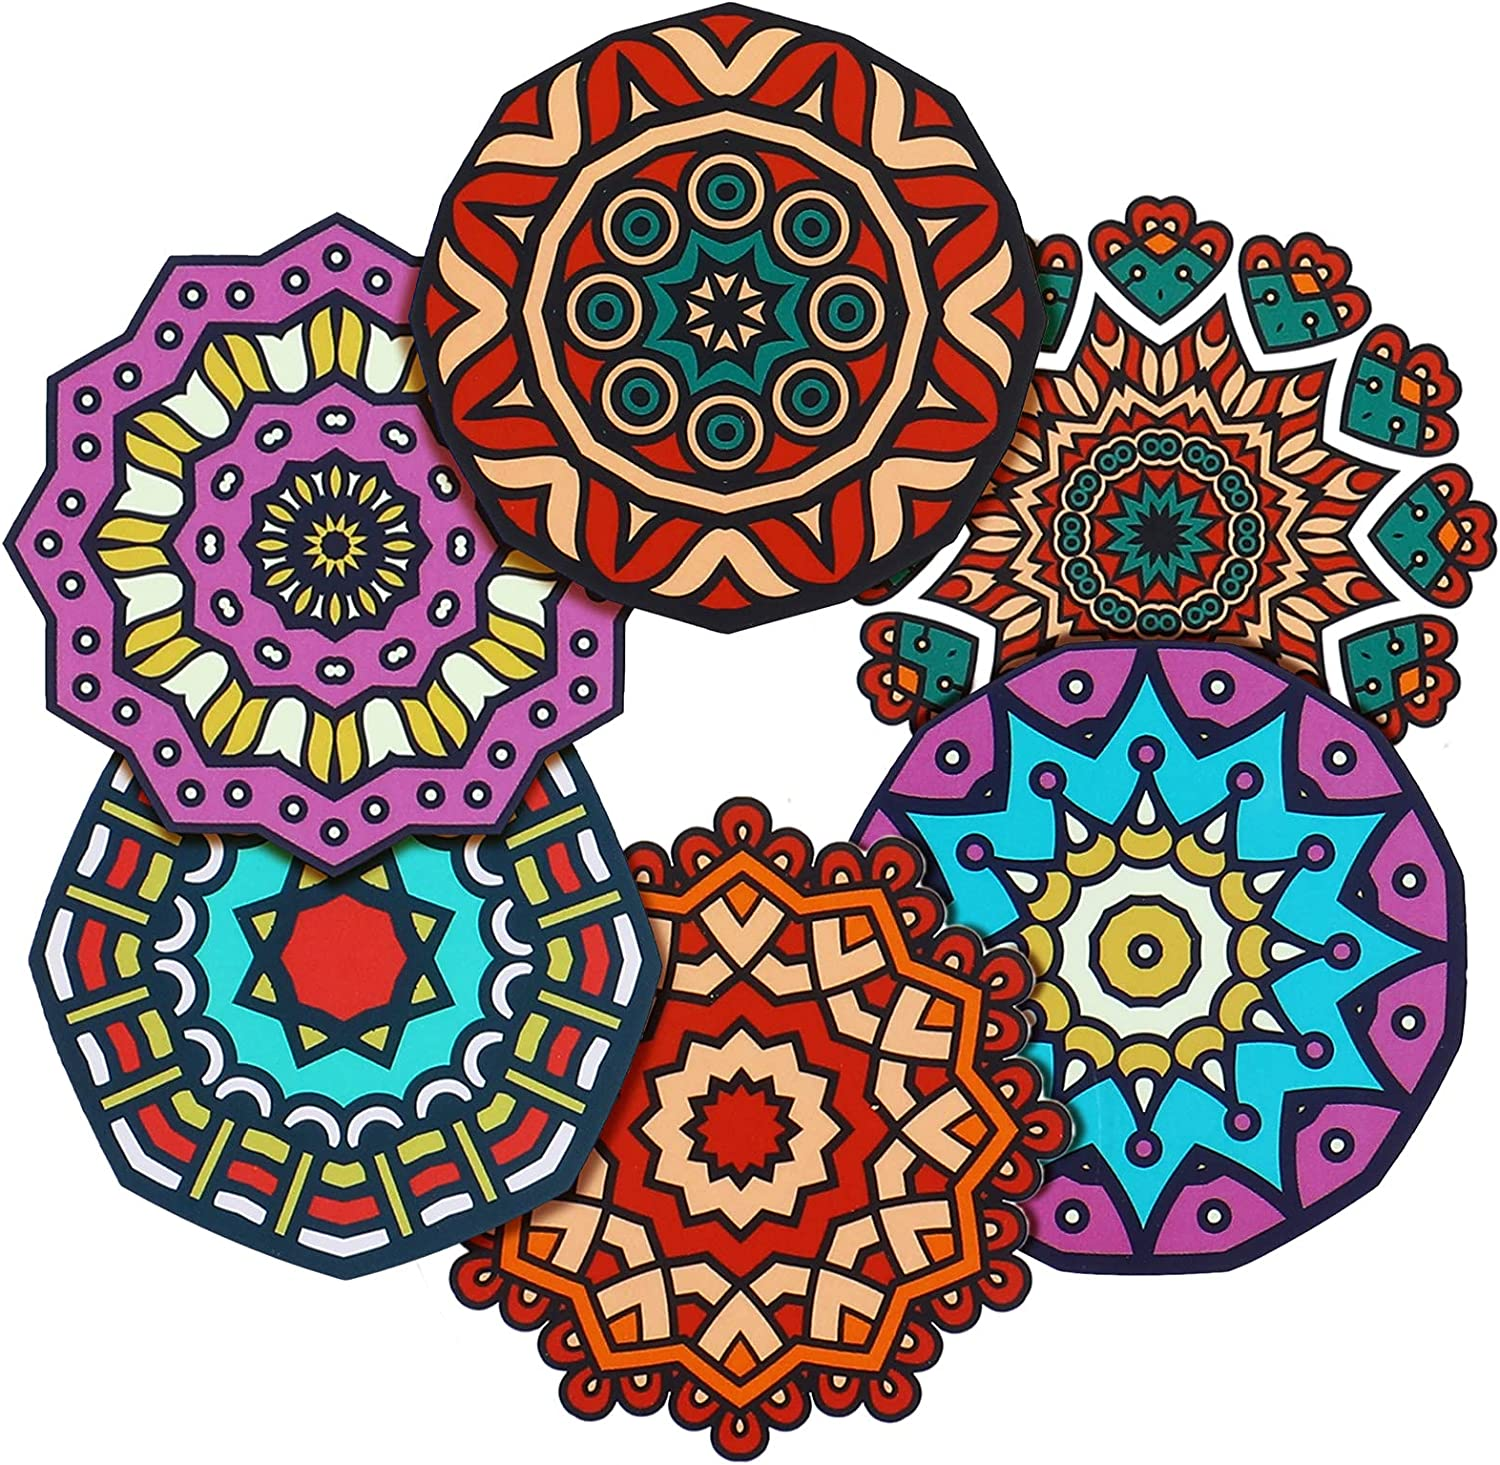 360 Pieces Mandala Stickers Mandala Flower Seals Labels 2 Inch Large Round Mandala Decals for Wall Laptop Water Bottles Holiday Greeting Cards Presents Envelopes Boxes